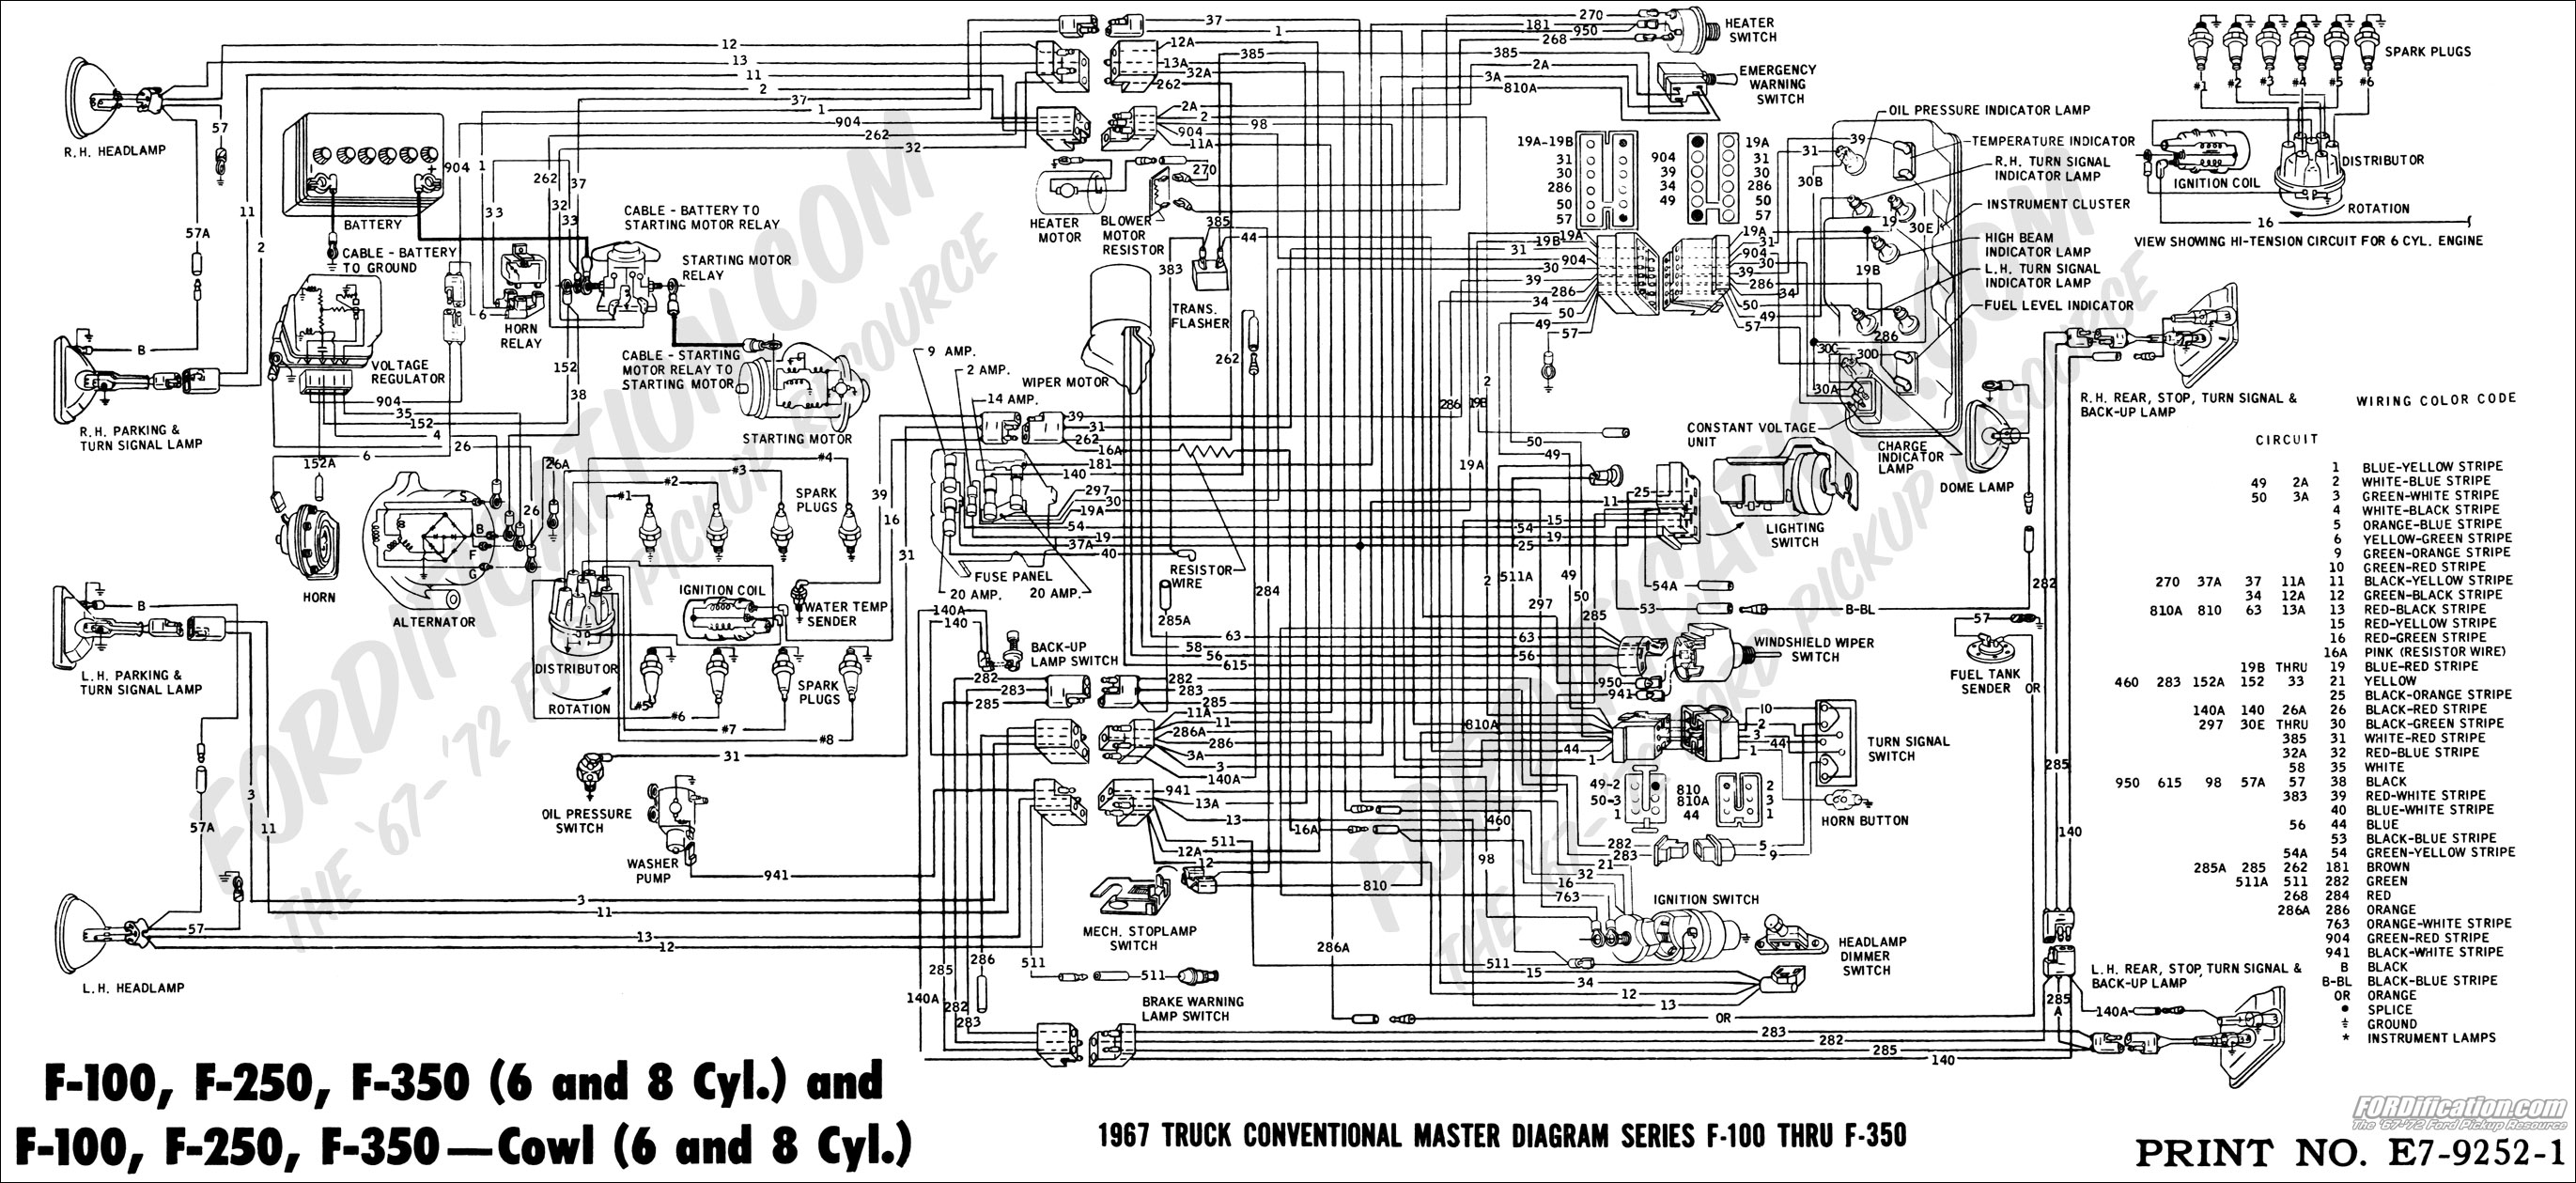 67masterdiagram 07 f150 starter wiring diagram 07 f150 wiring diagram \u2022 wiring wiring diagram for 2002 f250 starter at soozxer.org